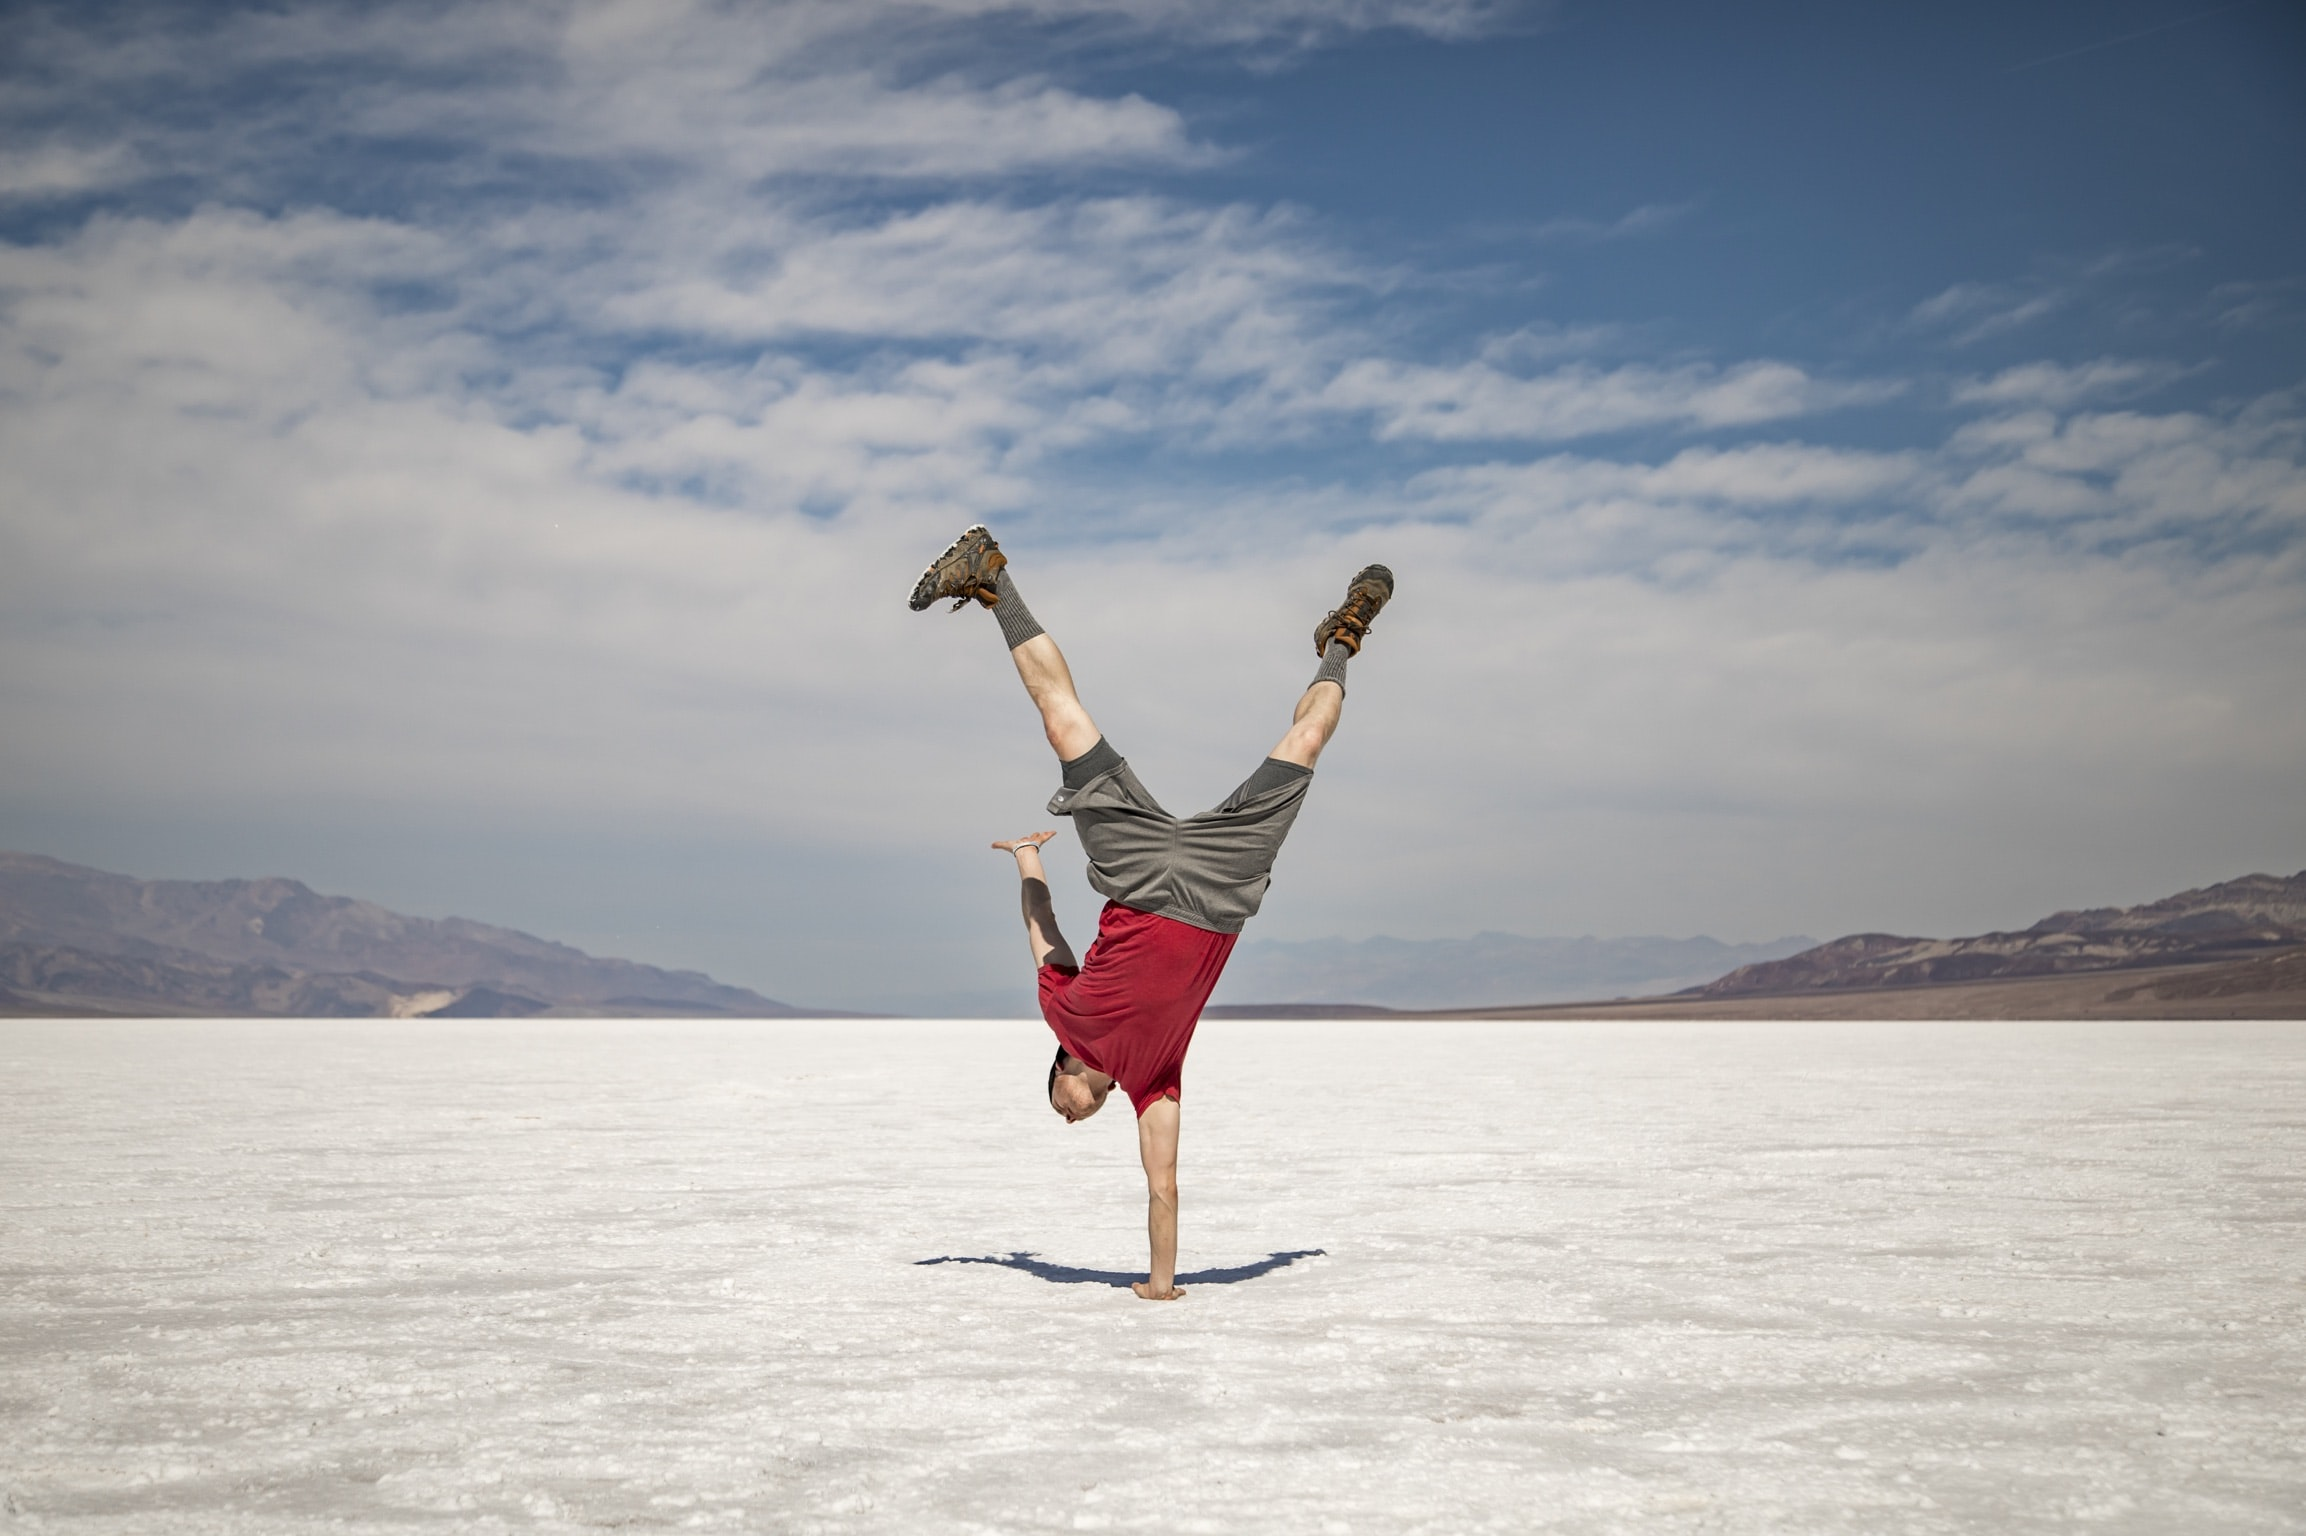 man doing one hand stand under white skies at daytime